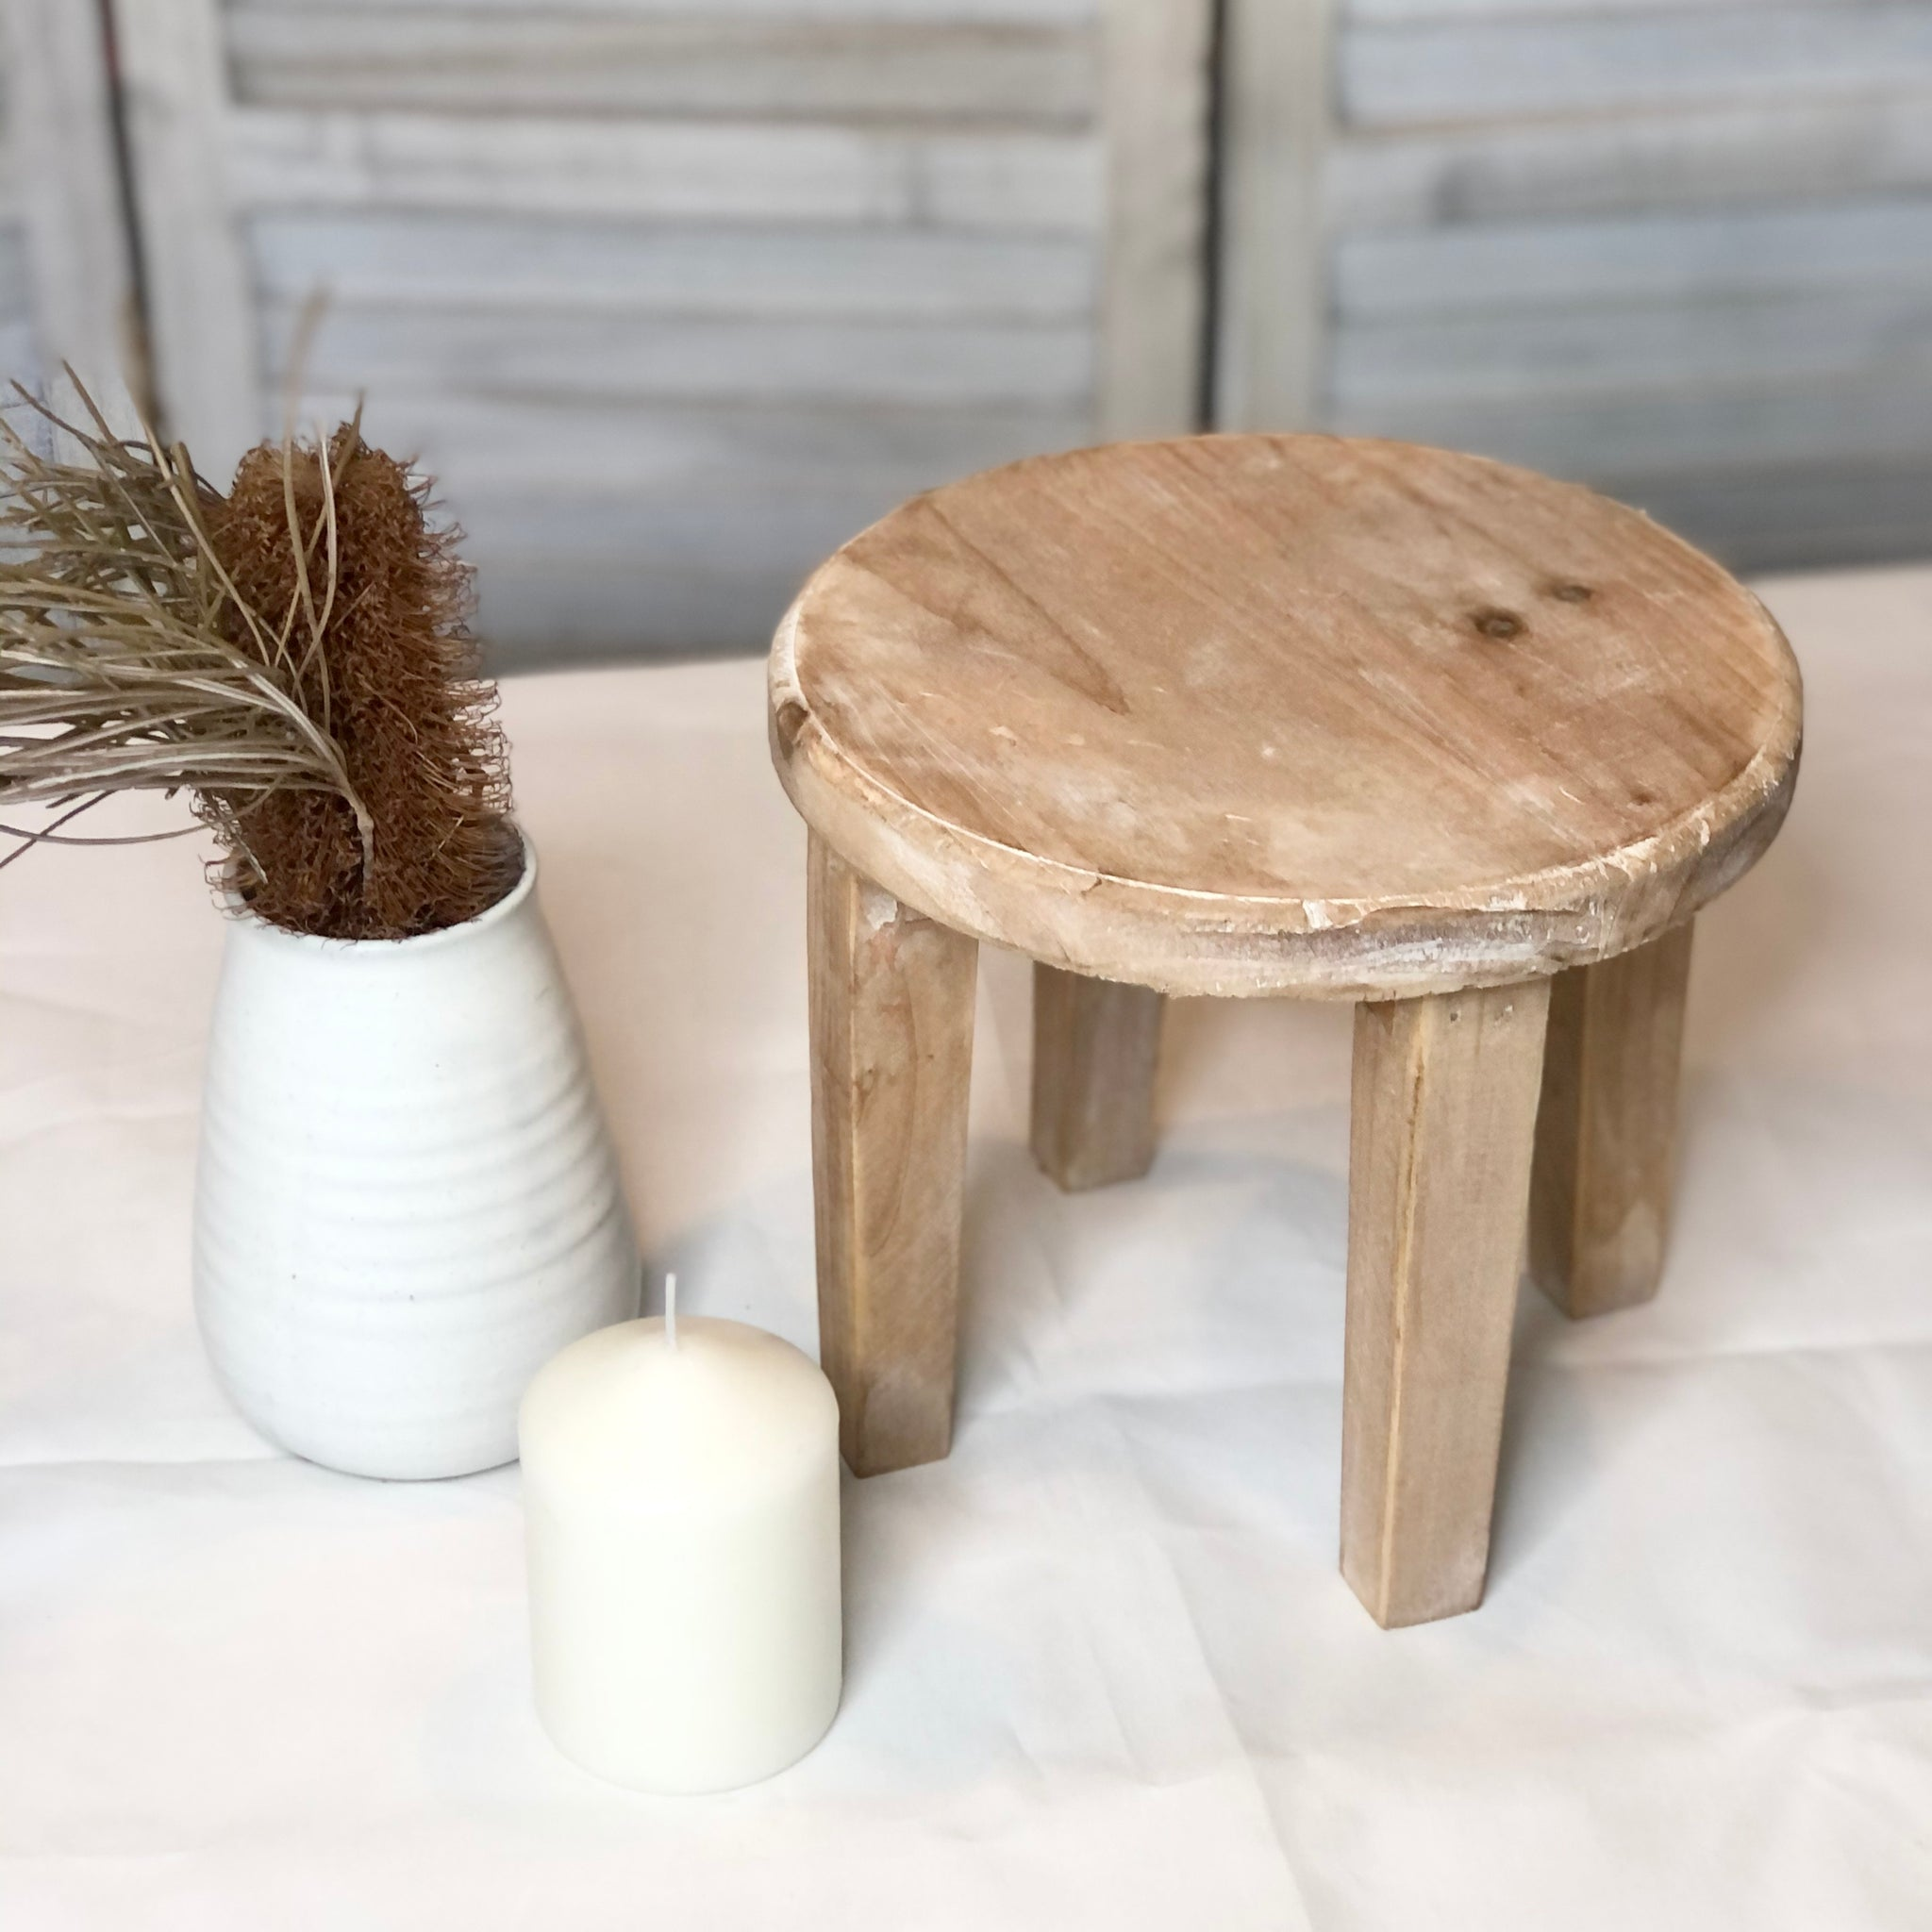 Gift, decor and crystal shop Australia: Hamptons wooden round small table / pot holder / milking stool